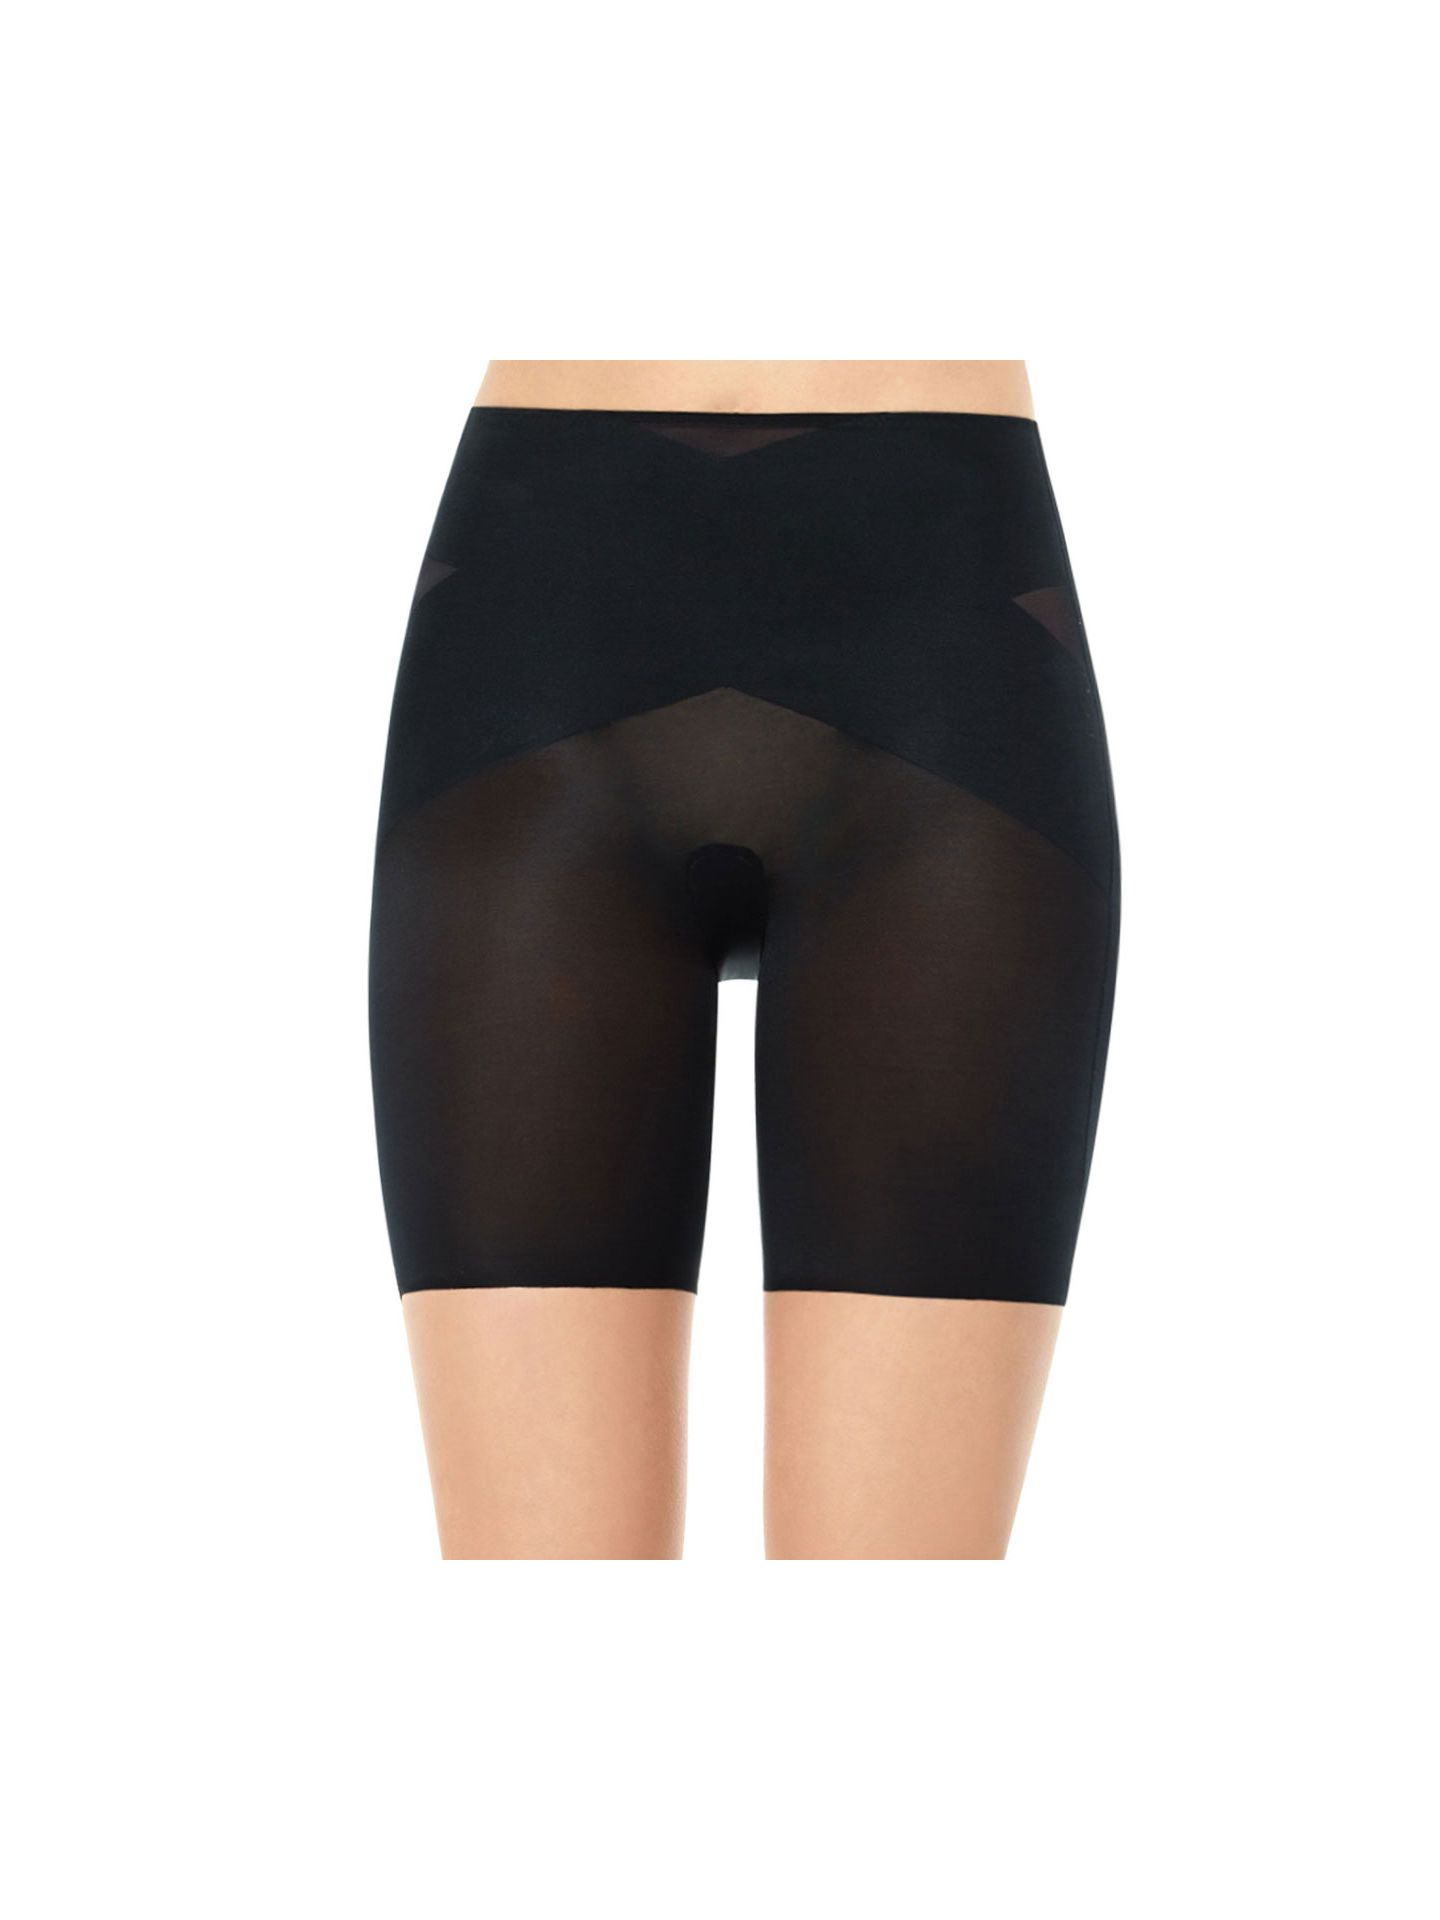 SPANX Skinny Britches Mid-Thigh - Black - Small